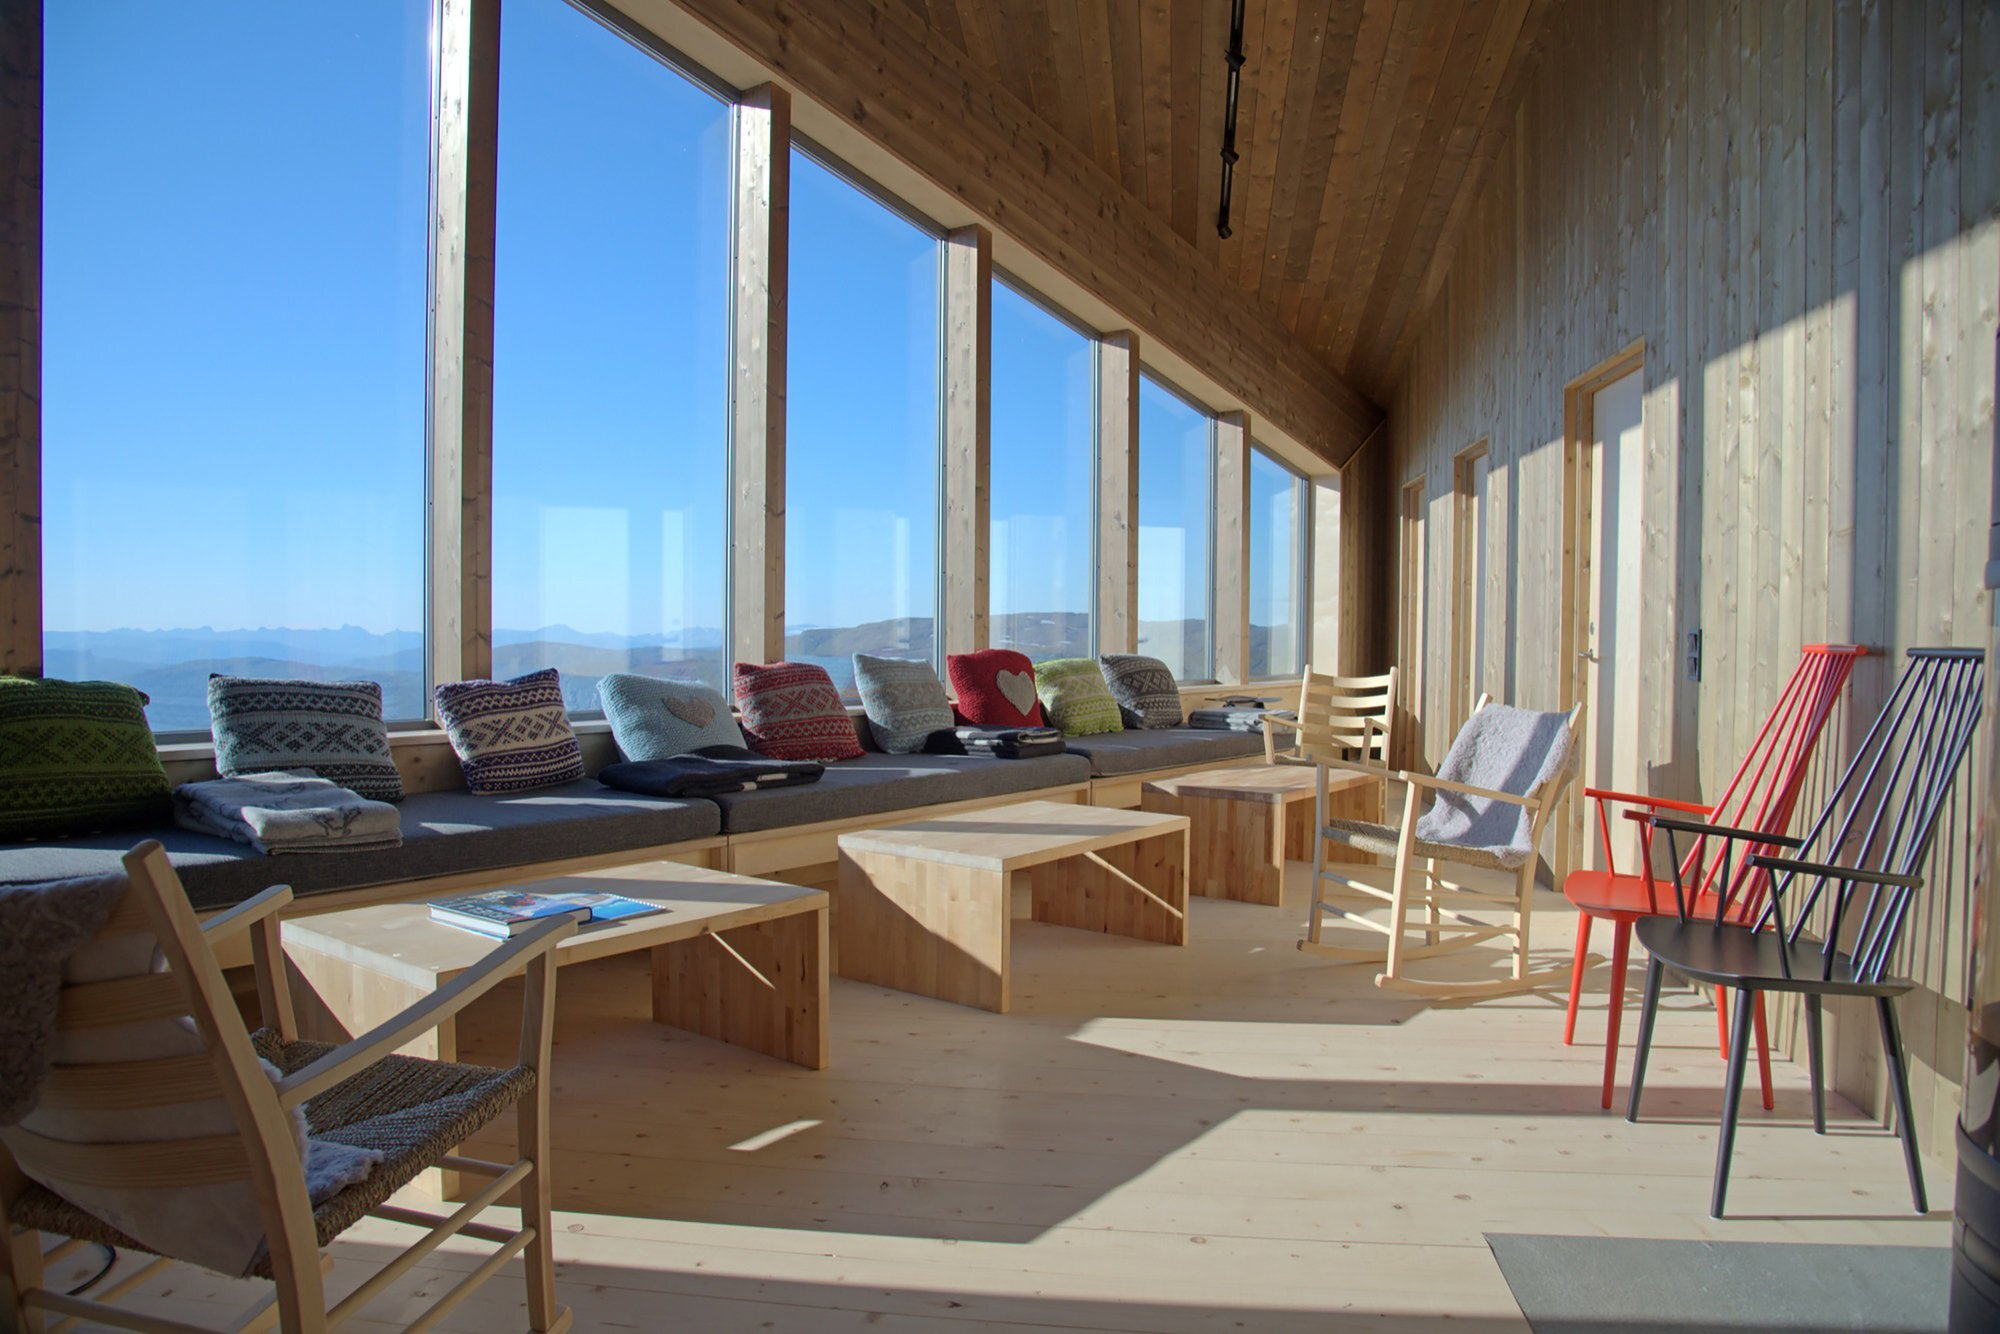 Rabot Tourist Cabin - JVA - Norway - Retreat - Living Area - Humble Homes